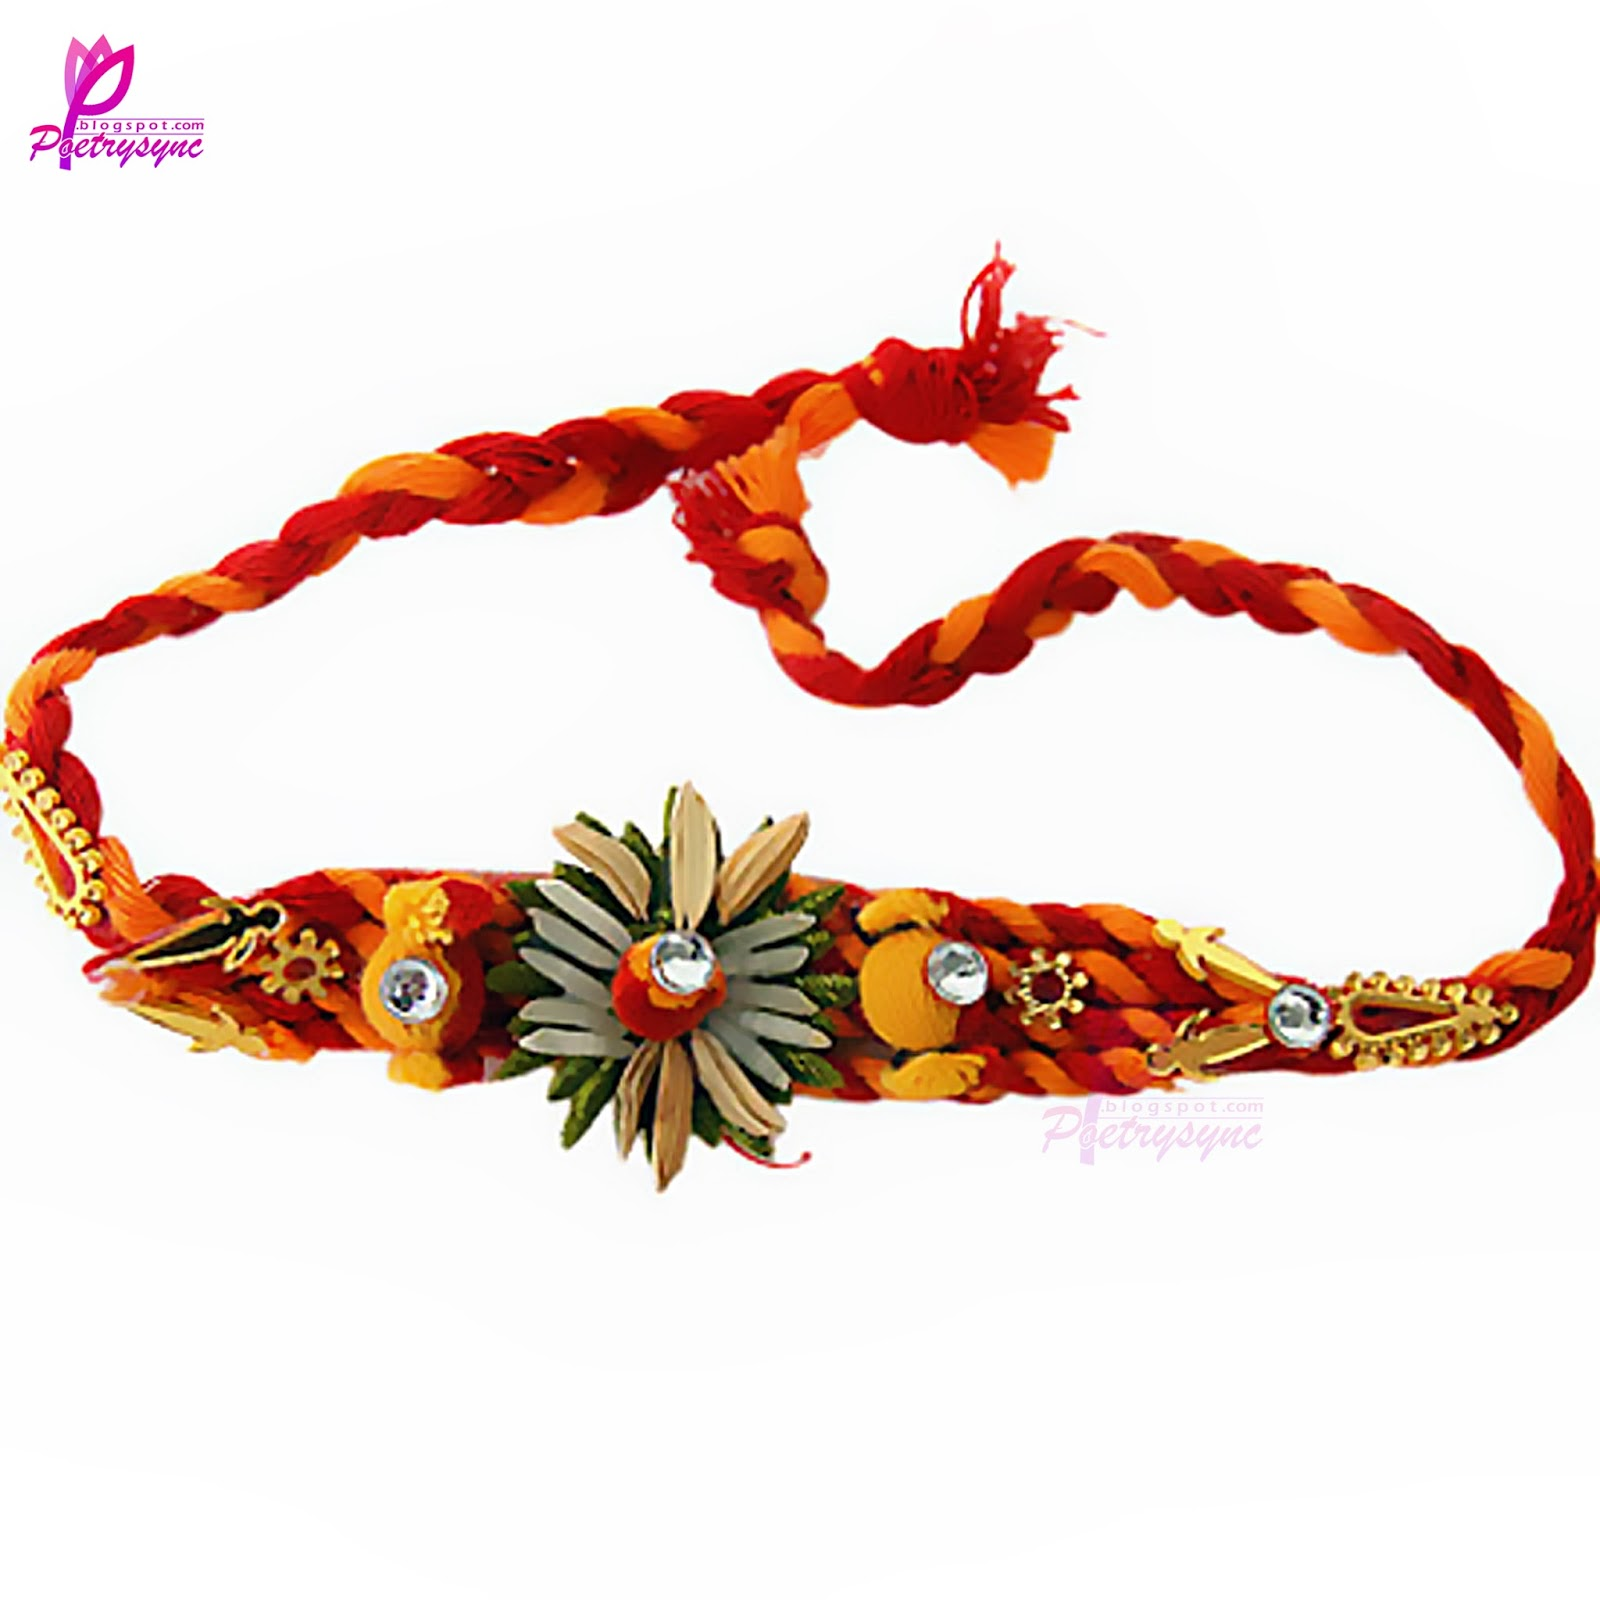 best rakhi pictures above collection of rakhi images are not ours.we ...